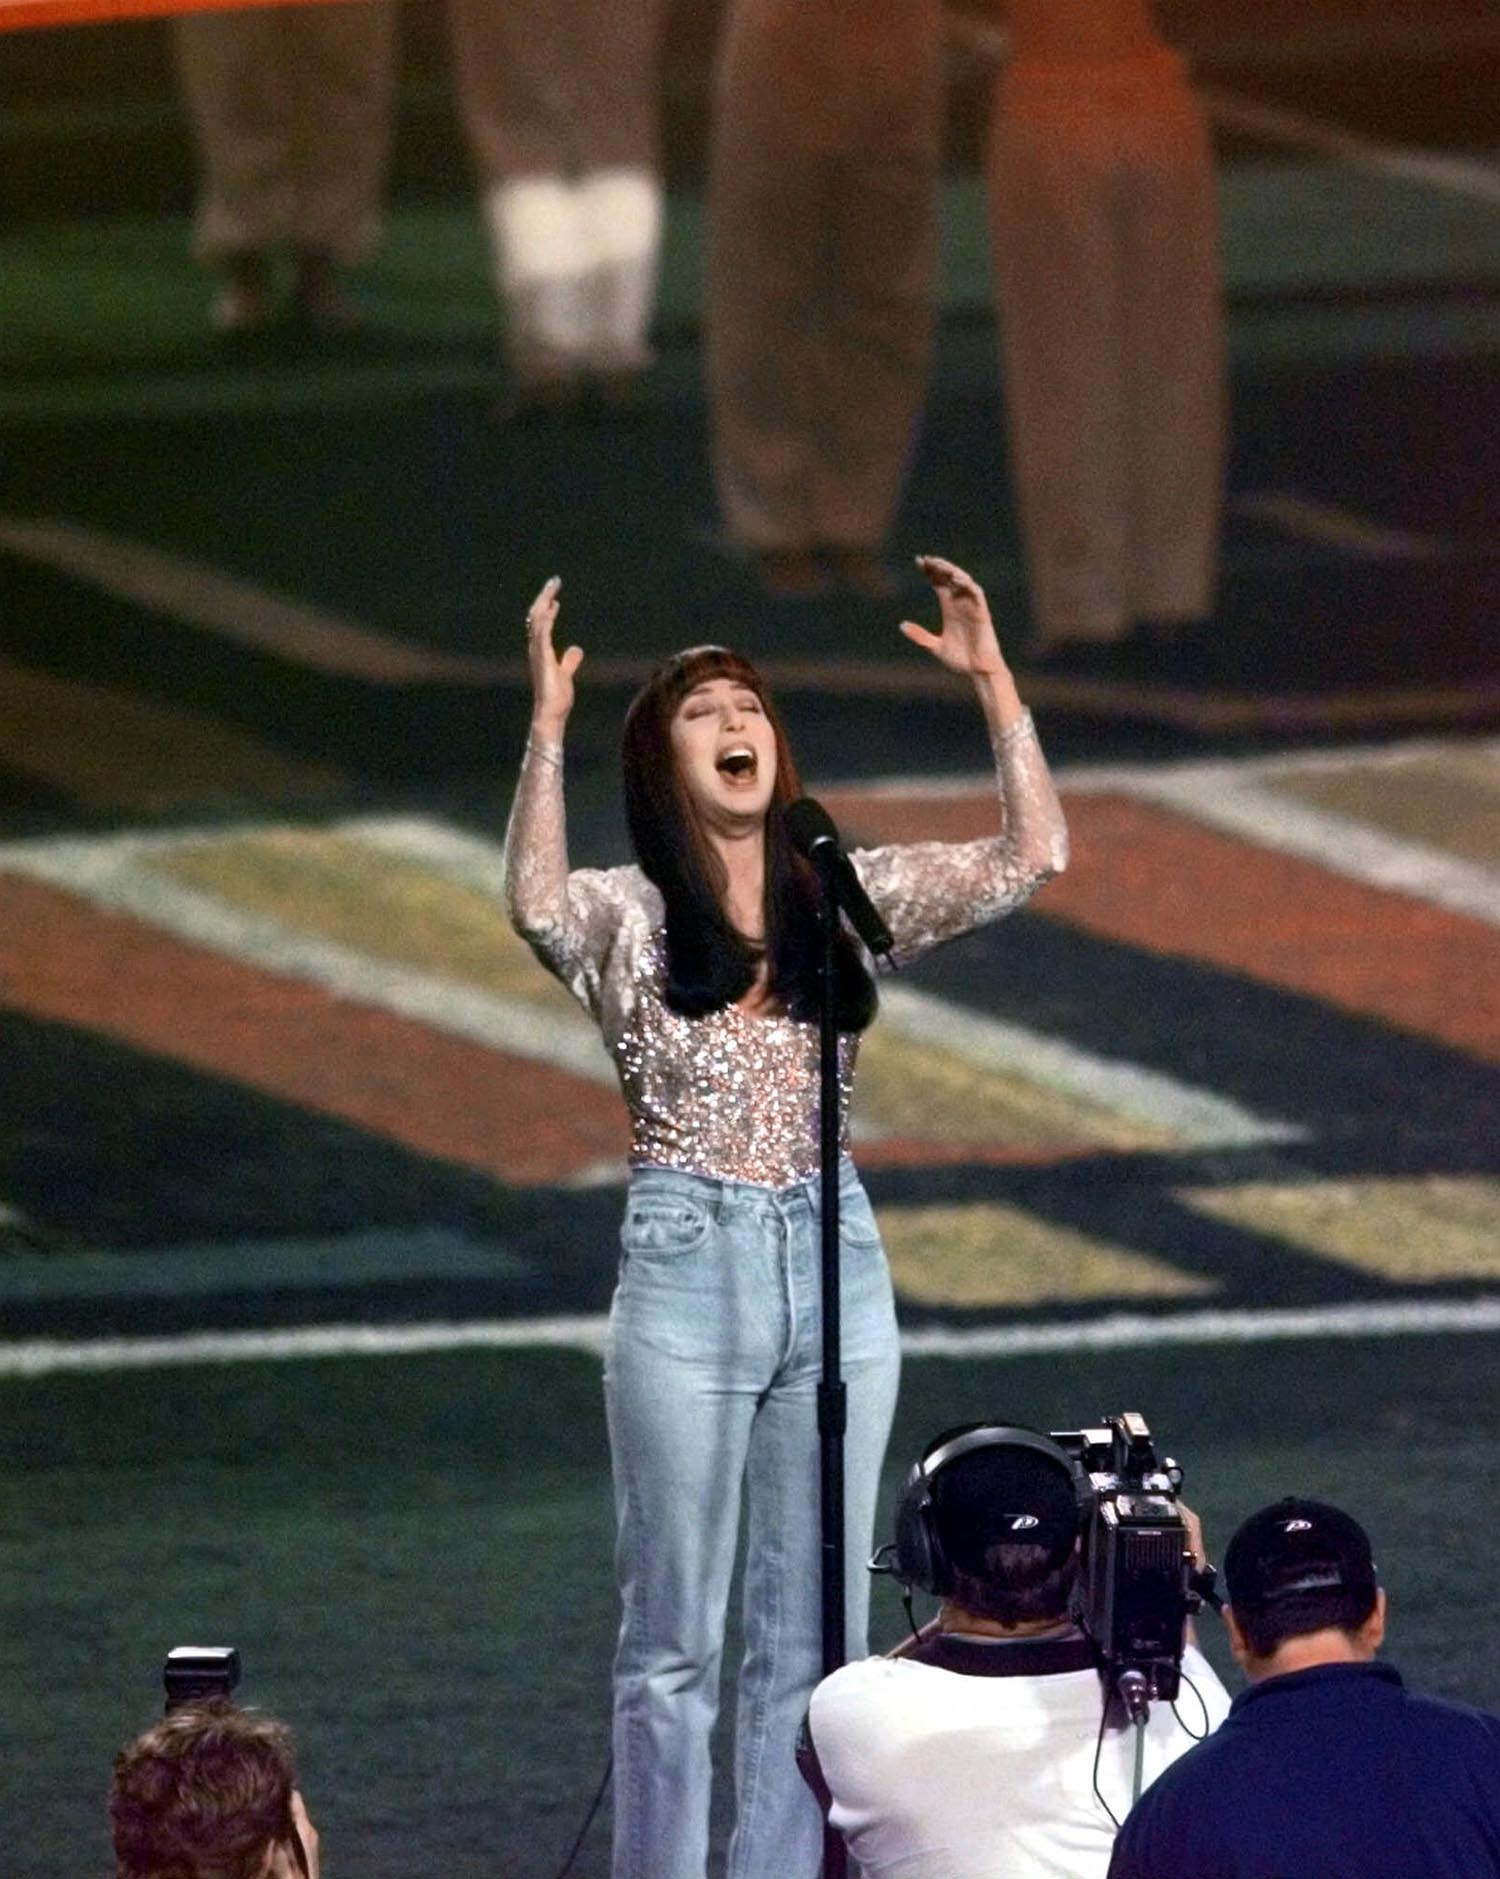 <div class='meta'><div class='origin-logo' data-origin='AP'></div><span class='caption-text' data-credit='AP Photo/Tony Gutierrez'>1999: Cher performs the National Athem before the start of Super Bowl XXXIII in Miami, Sunday, Jan. 31, 1999.</span></div>